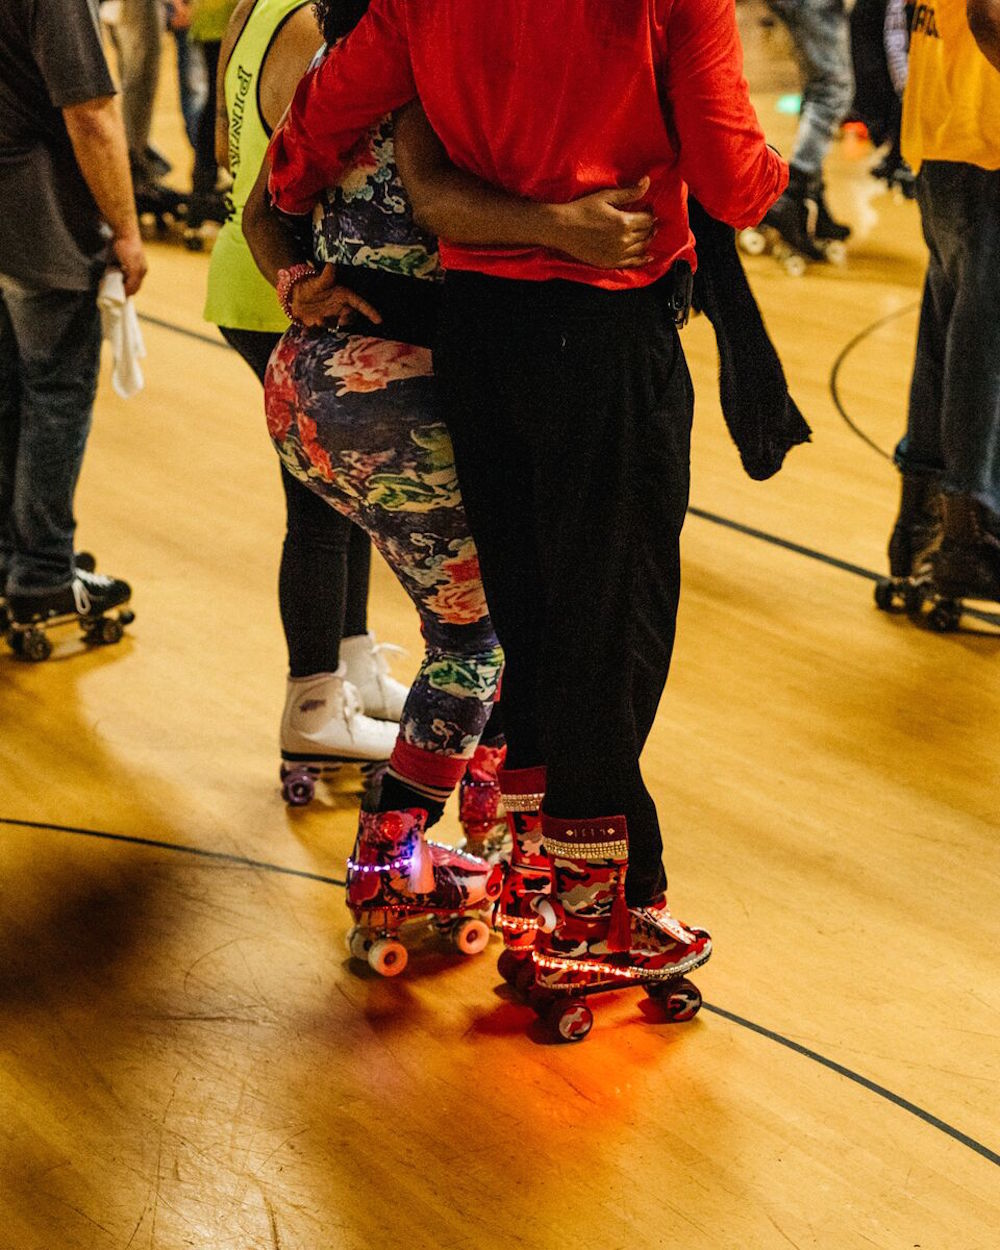 Roller skating rink philadelphia - Joe And When You Get Good You Don T Want To Do Anything Else But Teach Somebody It Just Keeps It Going